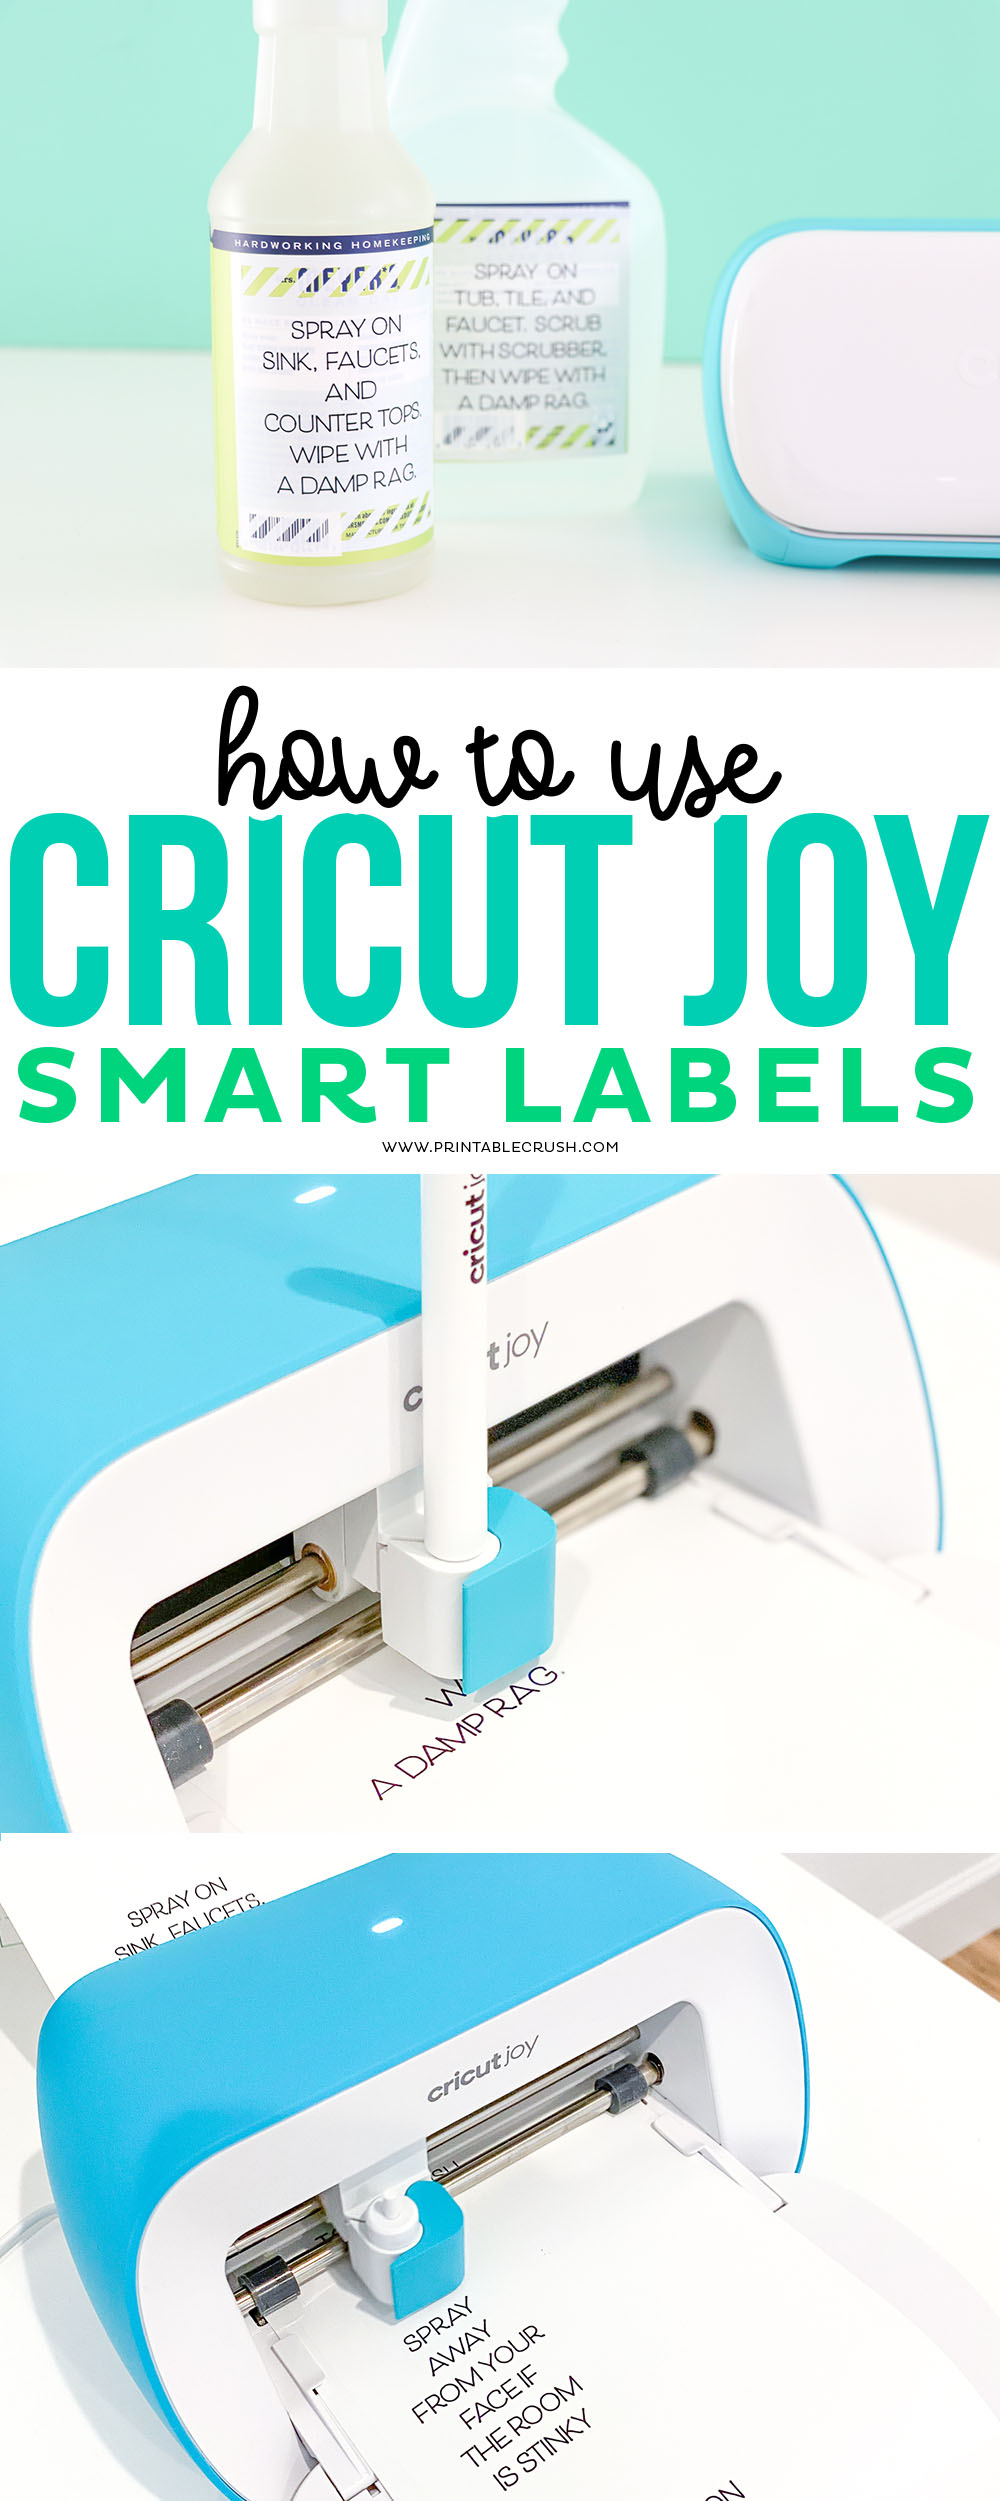 Use Cricut Smart Labels to create bathroom instruction labels on cleaning products